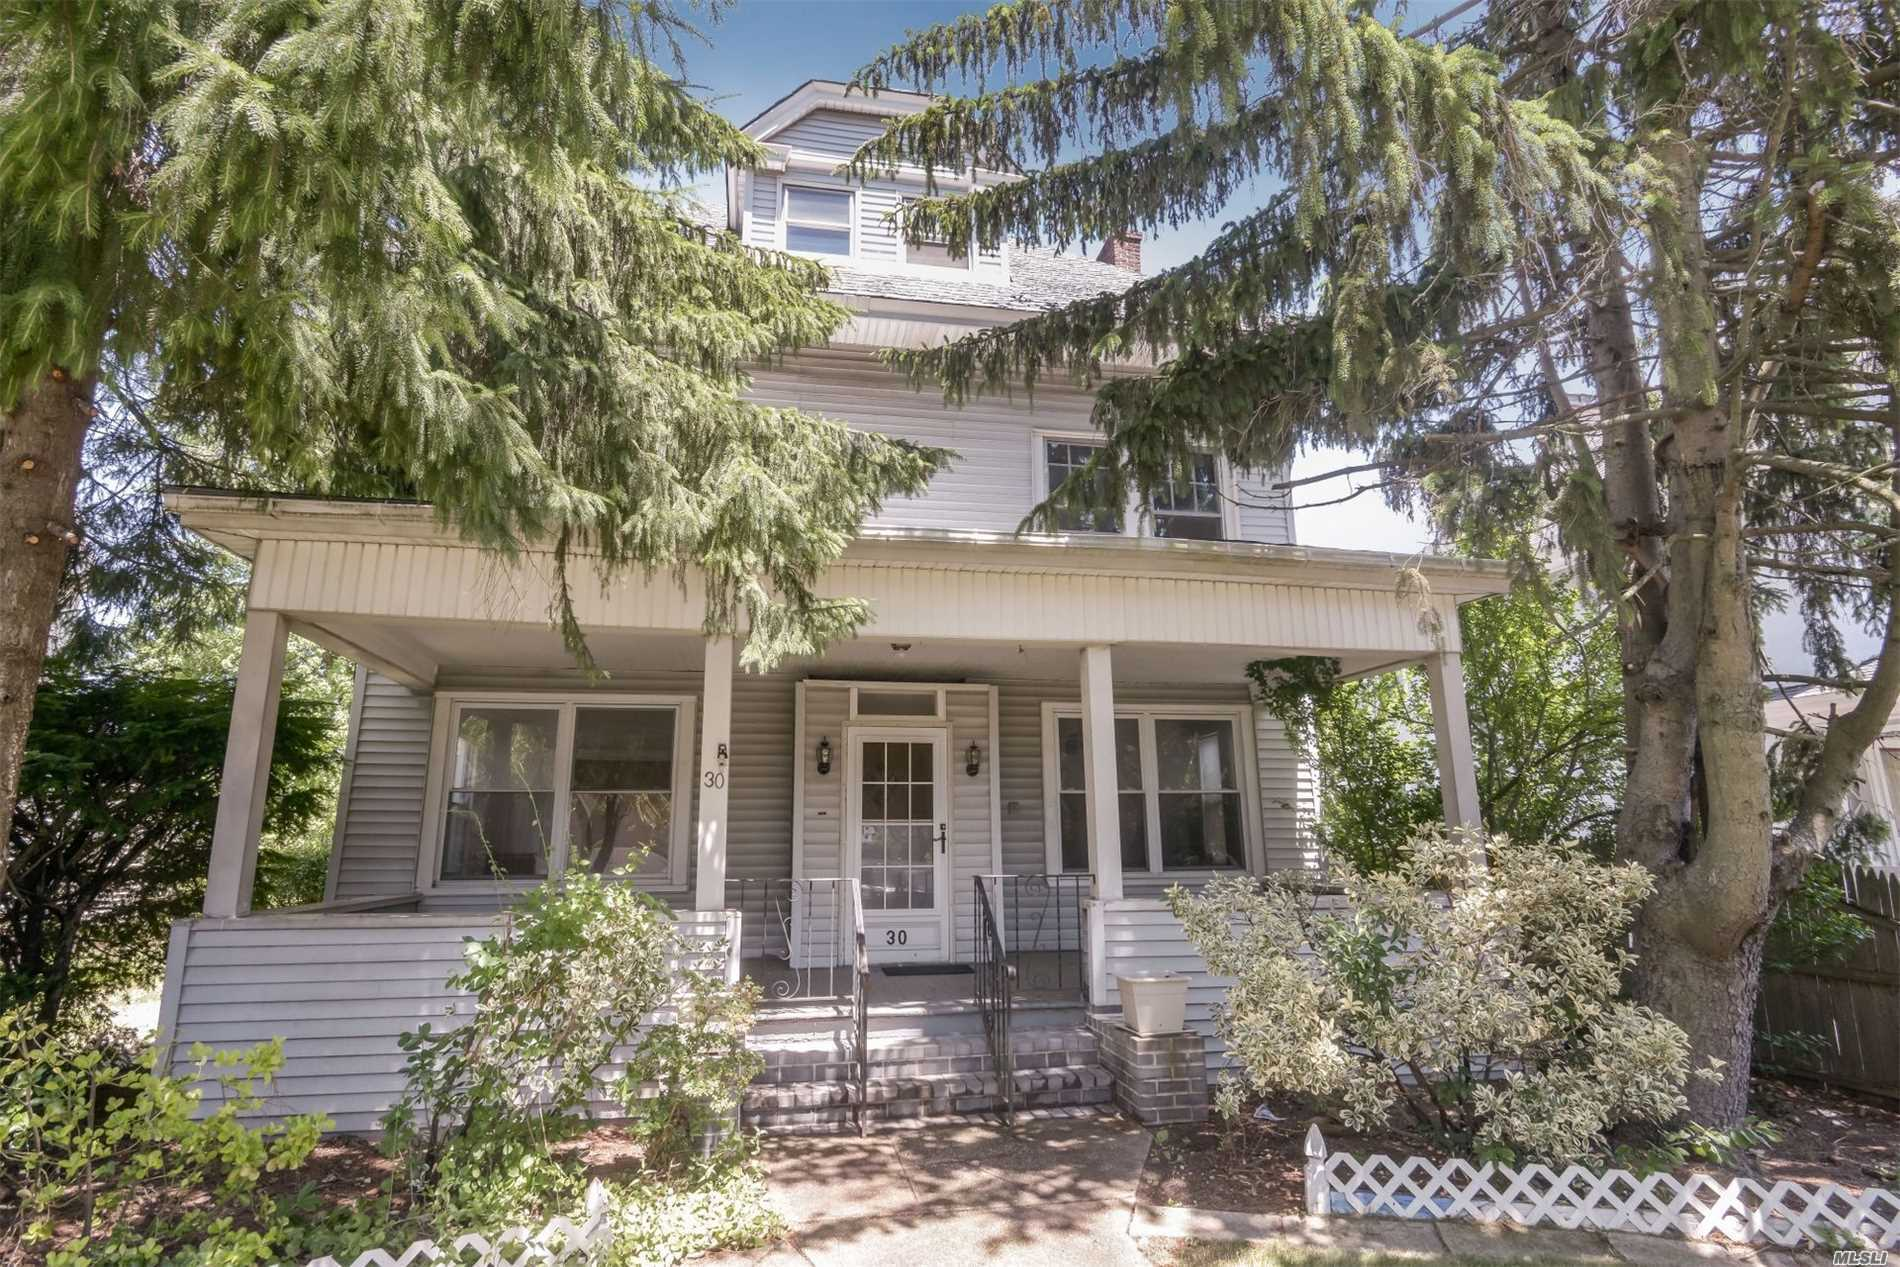 Old Woodmere Dutch Colonial Boosts 4 Bedrooms Plus And 2 Full Bathrooms .Builder's Special. Call Your Investors Or Buyers Who Want To Create Their Own Design. This House Needs Tlc But It Has Great Bones. Location Is Awesome. Close To All. Taxes Have Not Been Grieved. New Boiler. Full Basement